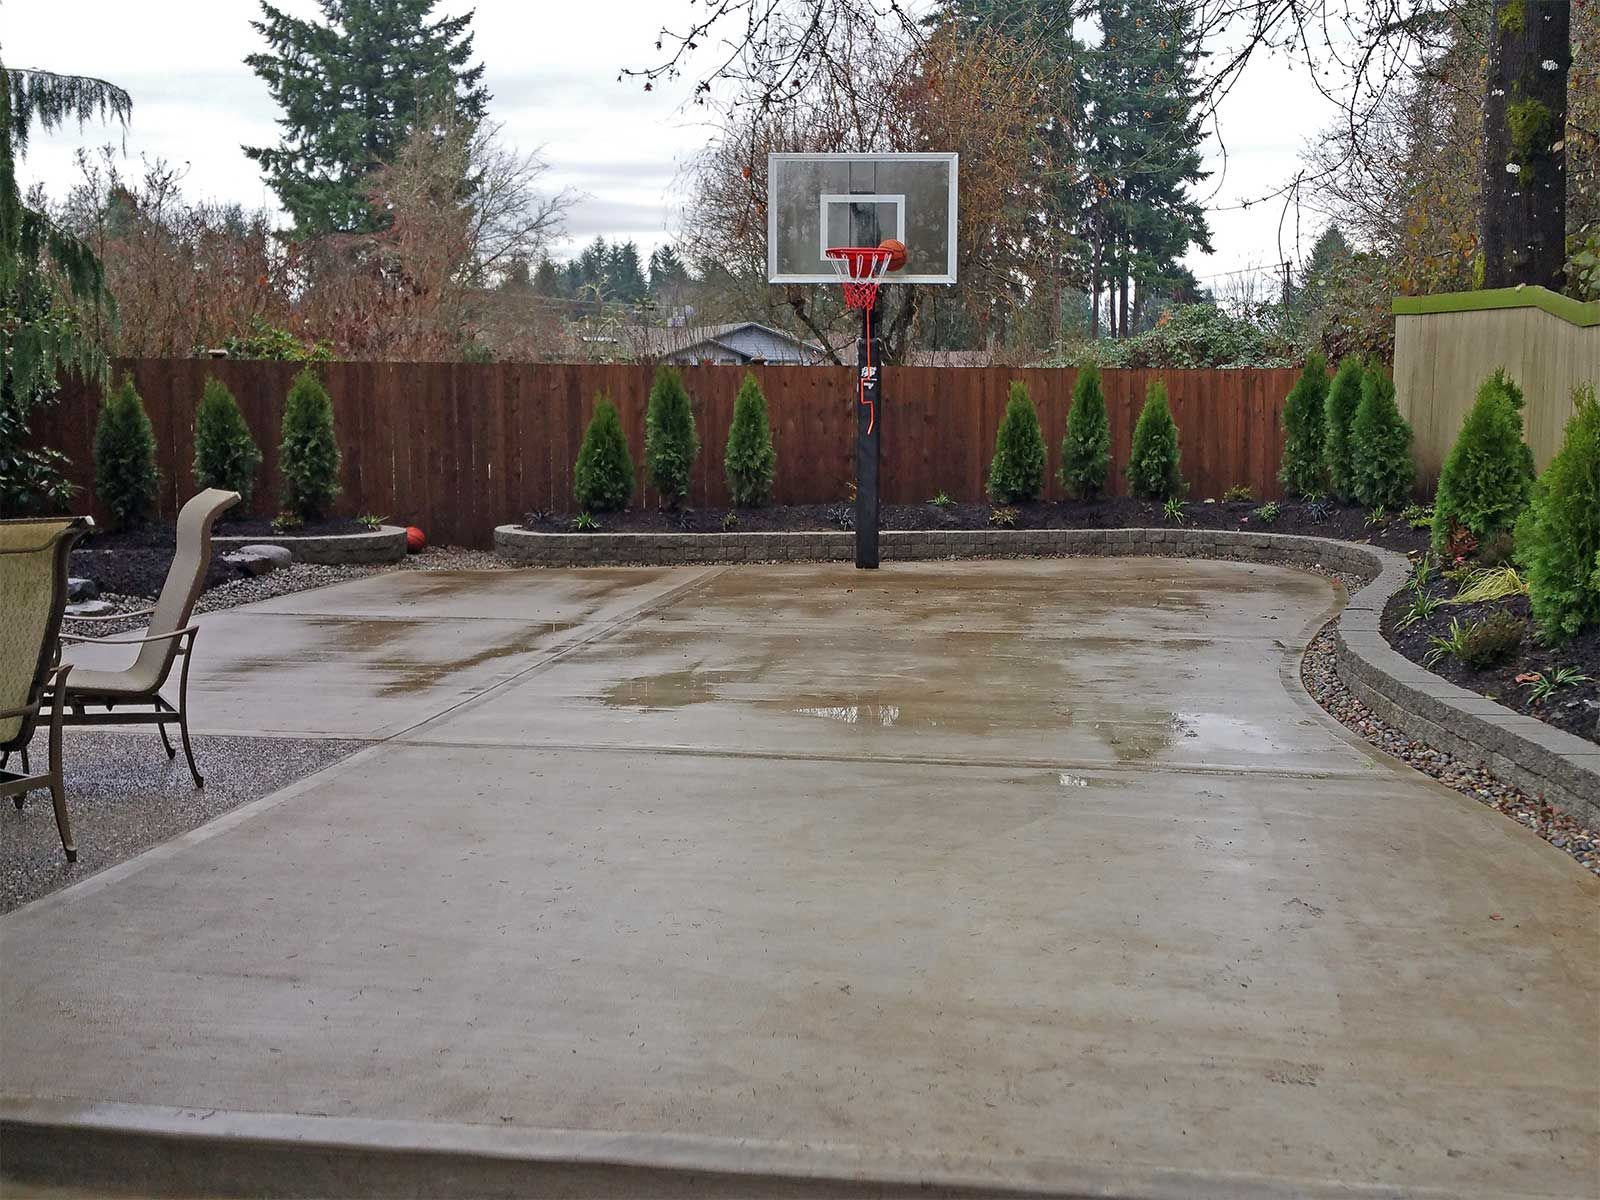 The Concrete Slab Basketball Court Is Great Exercise For The Whole with Backyard Cement Ideas